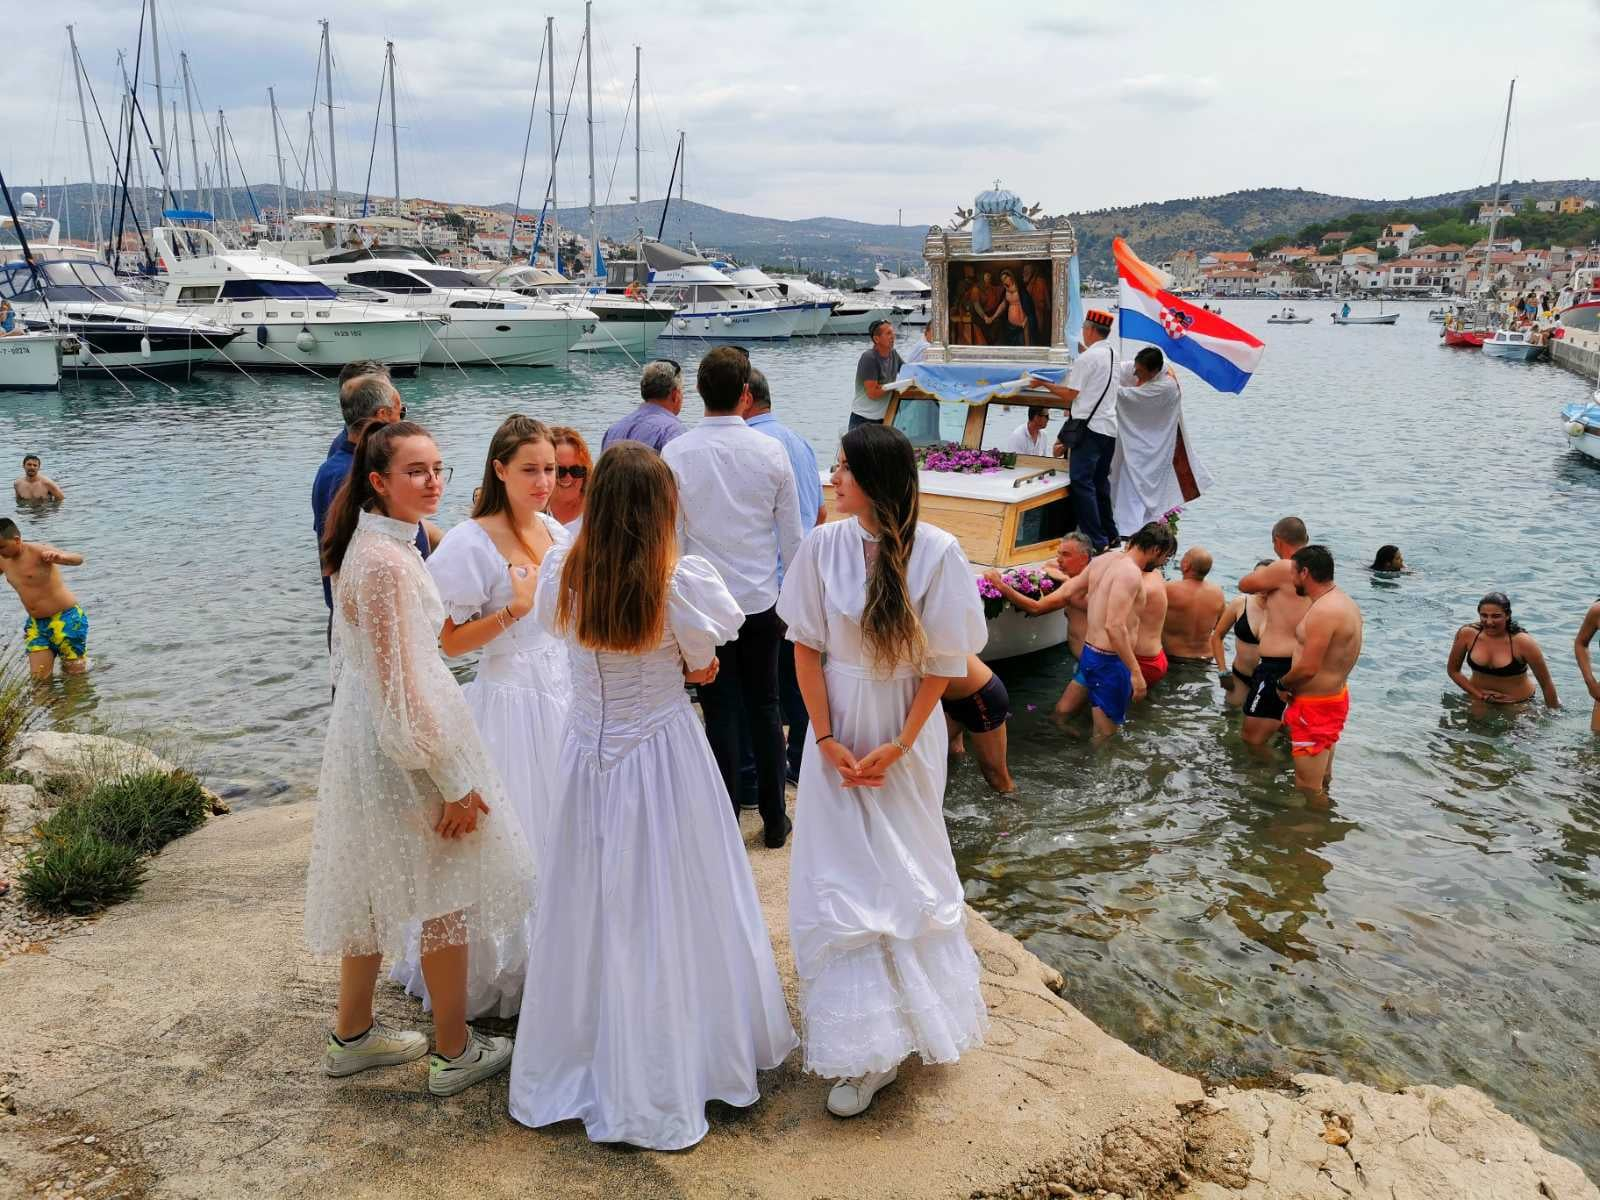 240-year-old tradition takes place in Rogoznica again